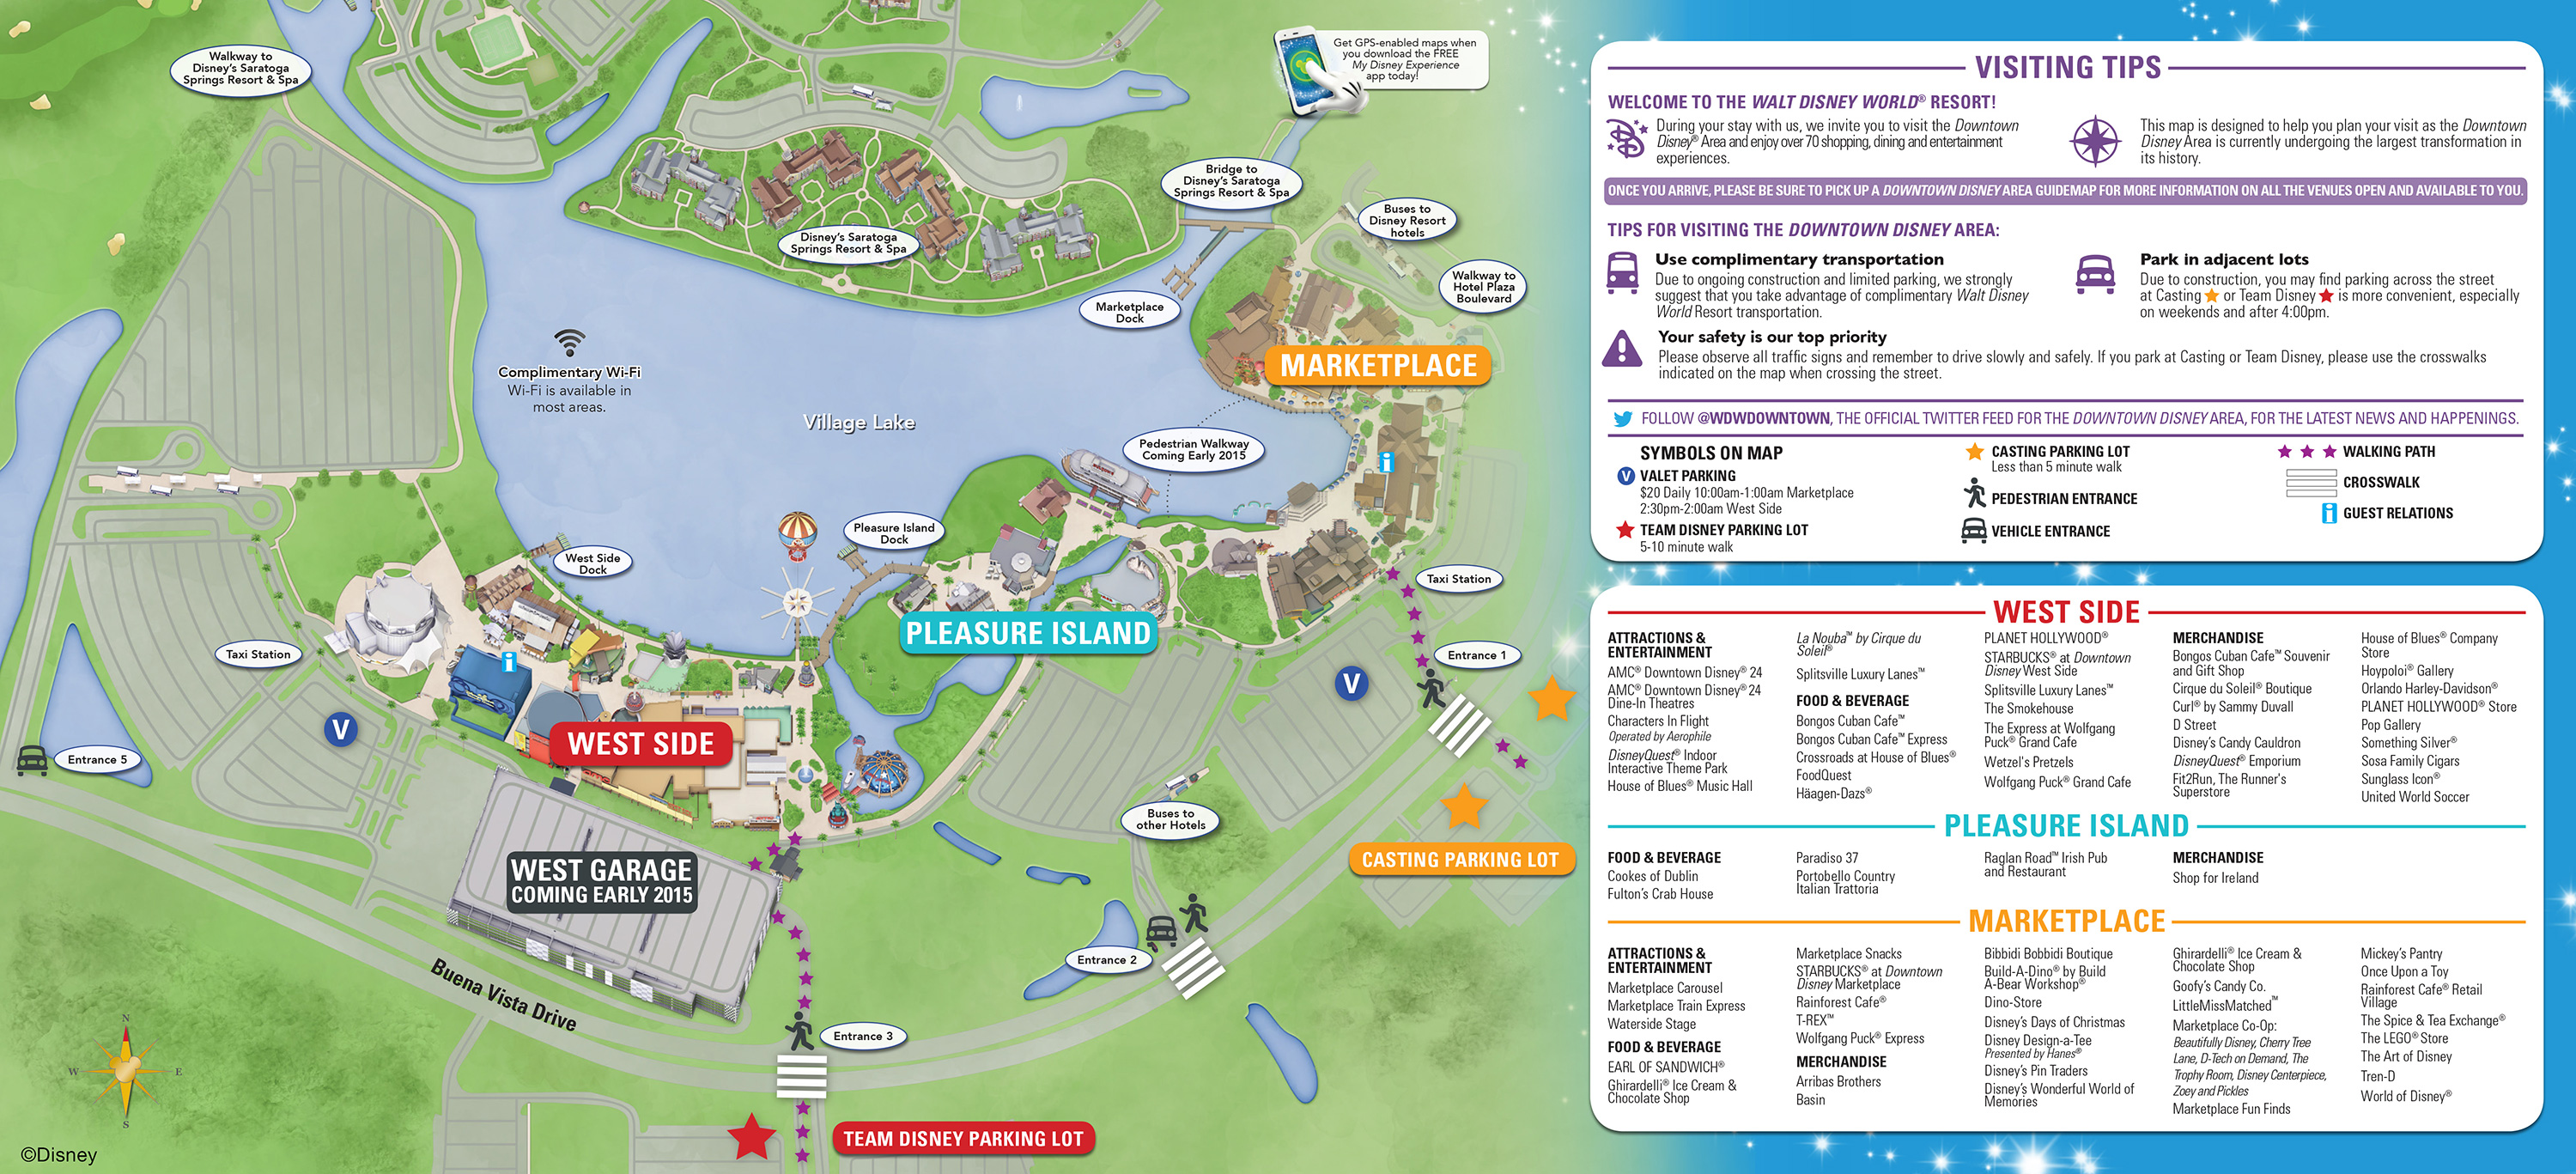 Downtown Disney Parking Information & Tips